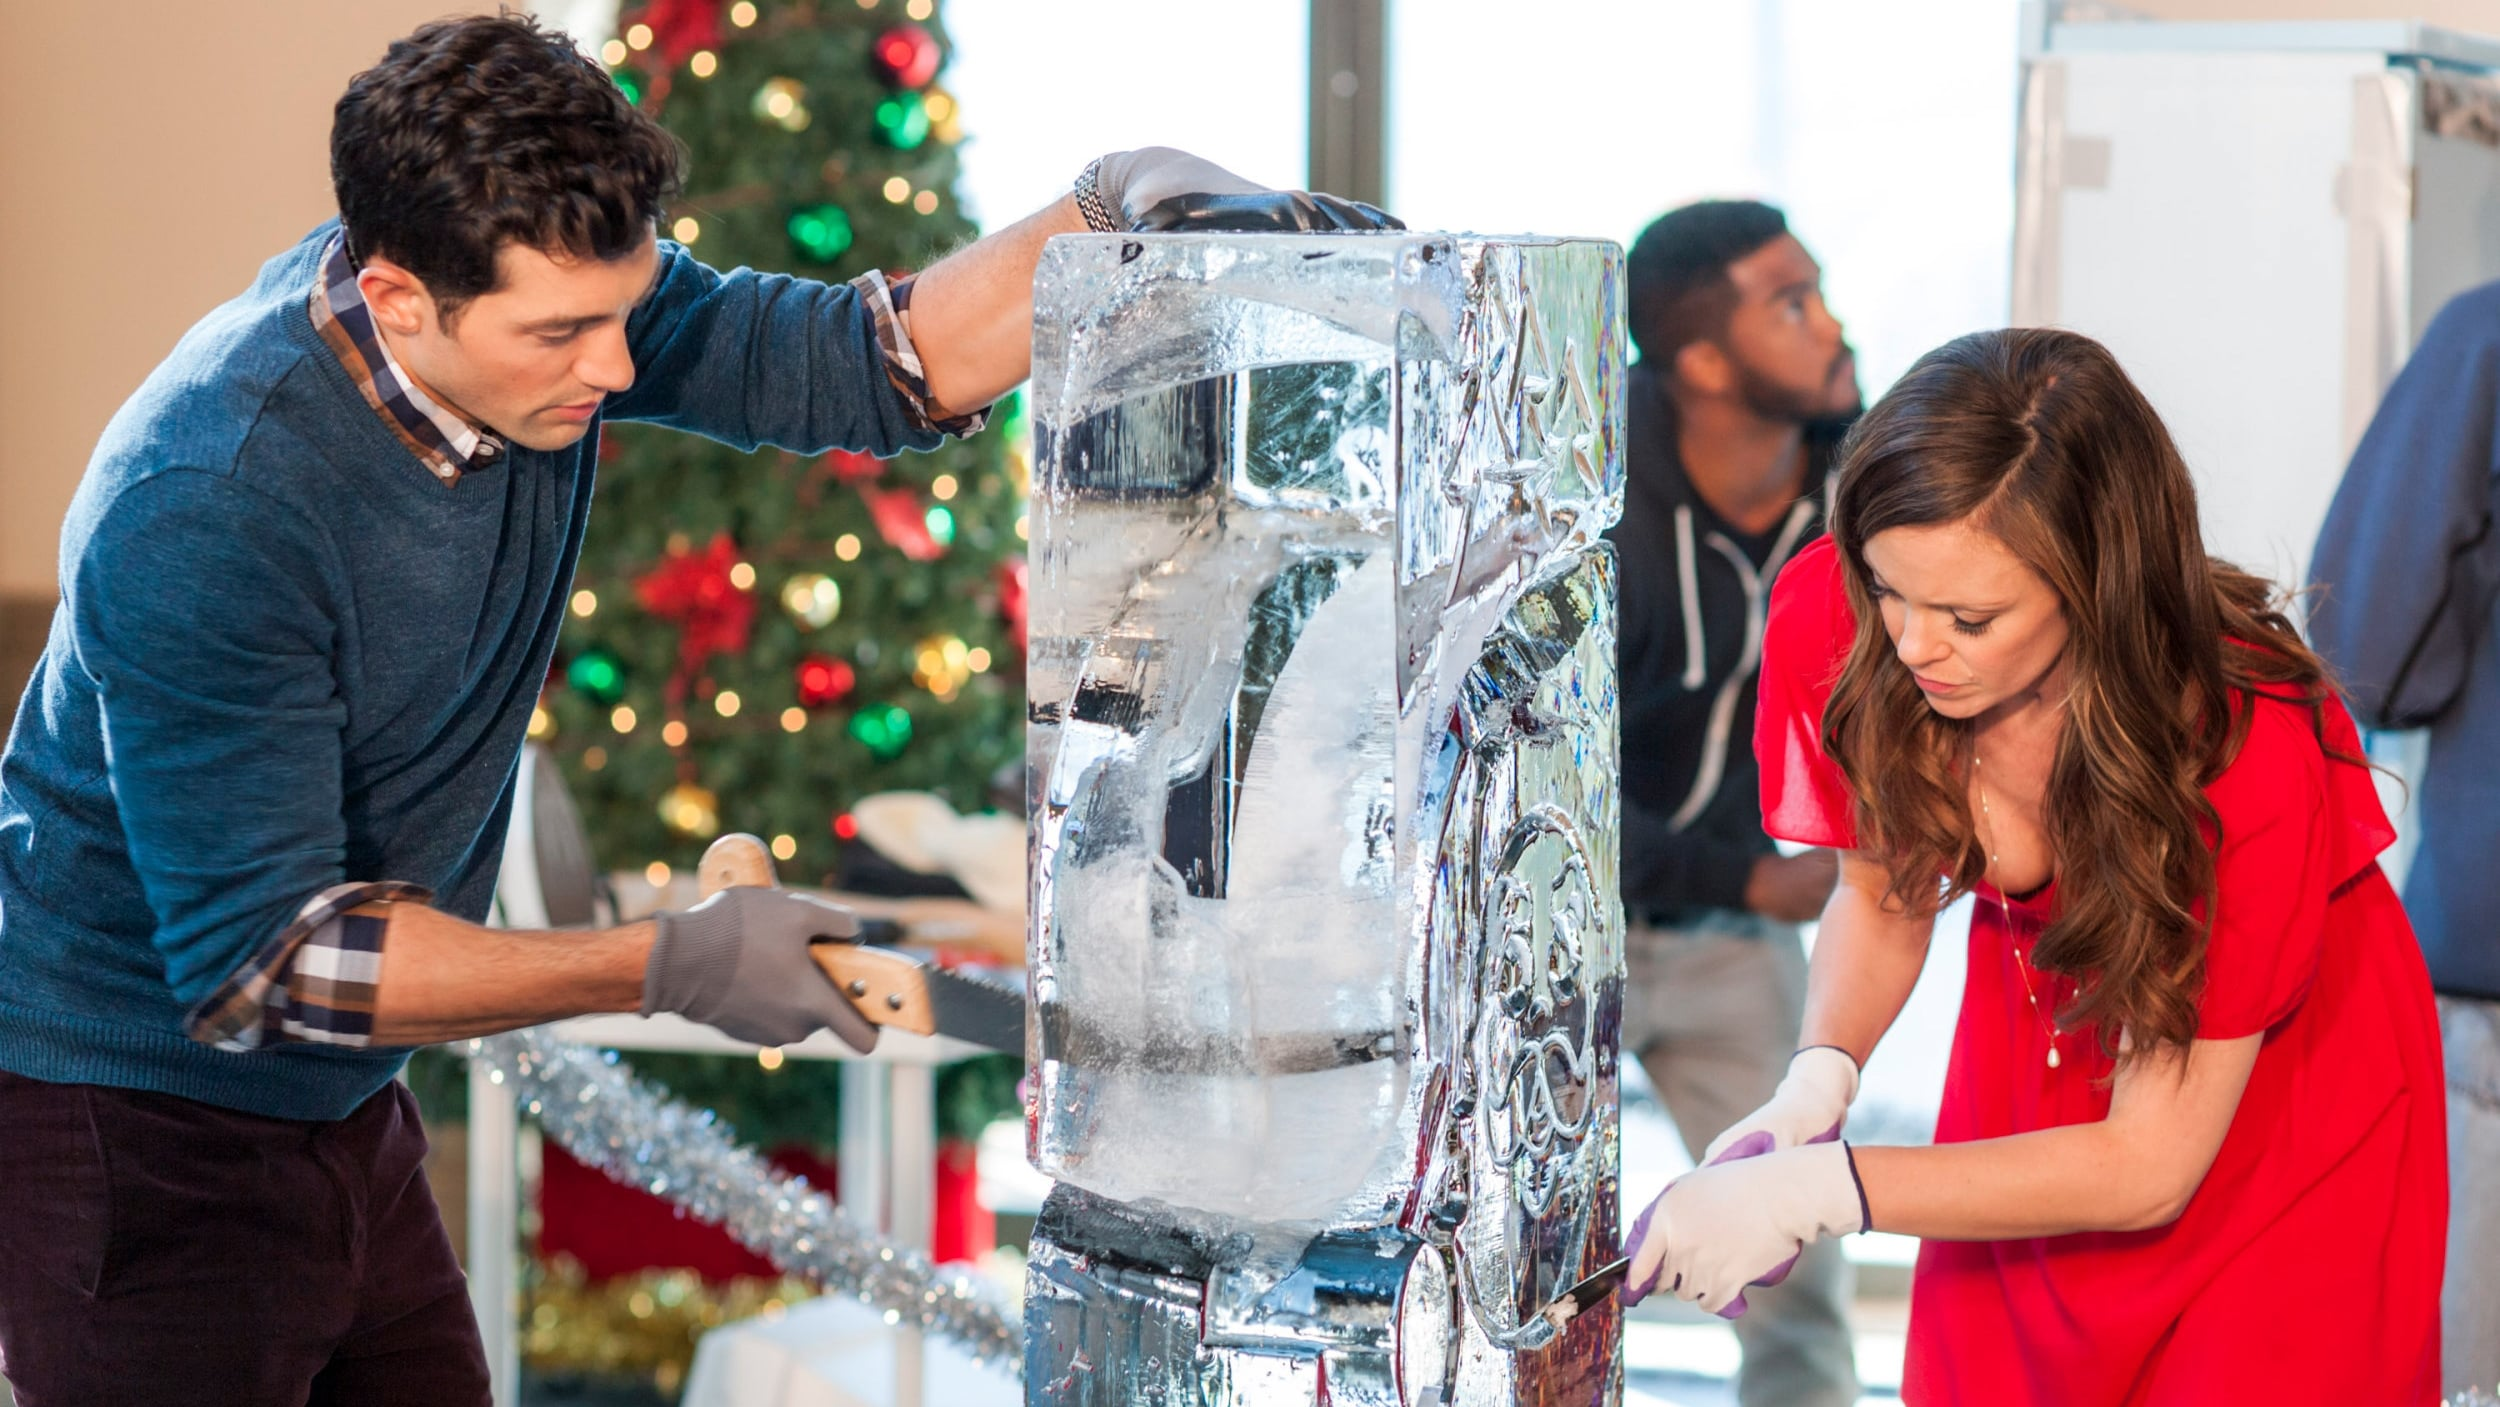 Ice Sculpture Christmas.Ice Sculpture Christmas 2015 Backdrops The Movie